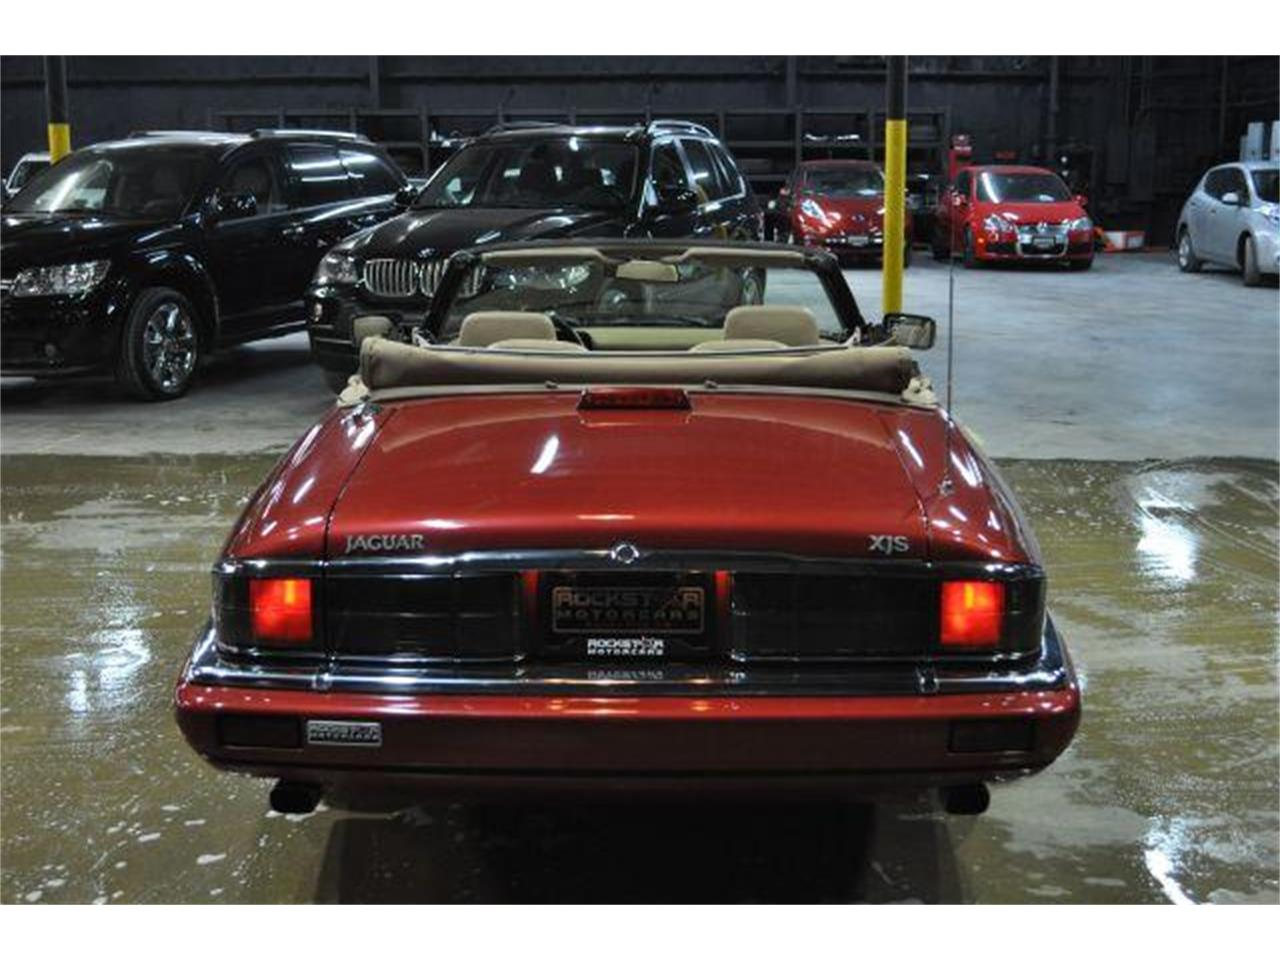 Large Picture of '94 Jaguar XJS located in Tennessee Offered by Rockstar Motorcars - G84N